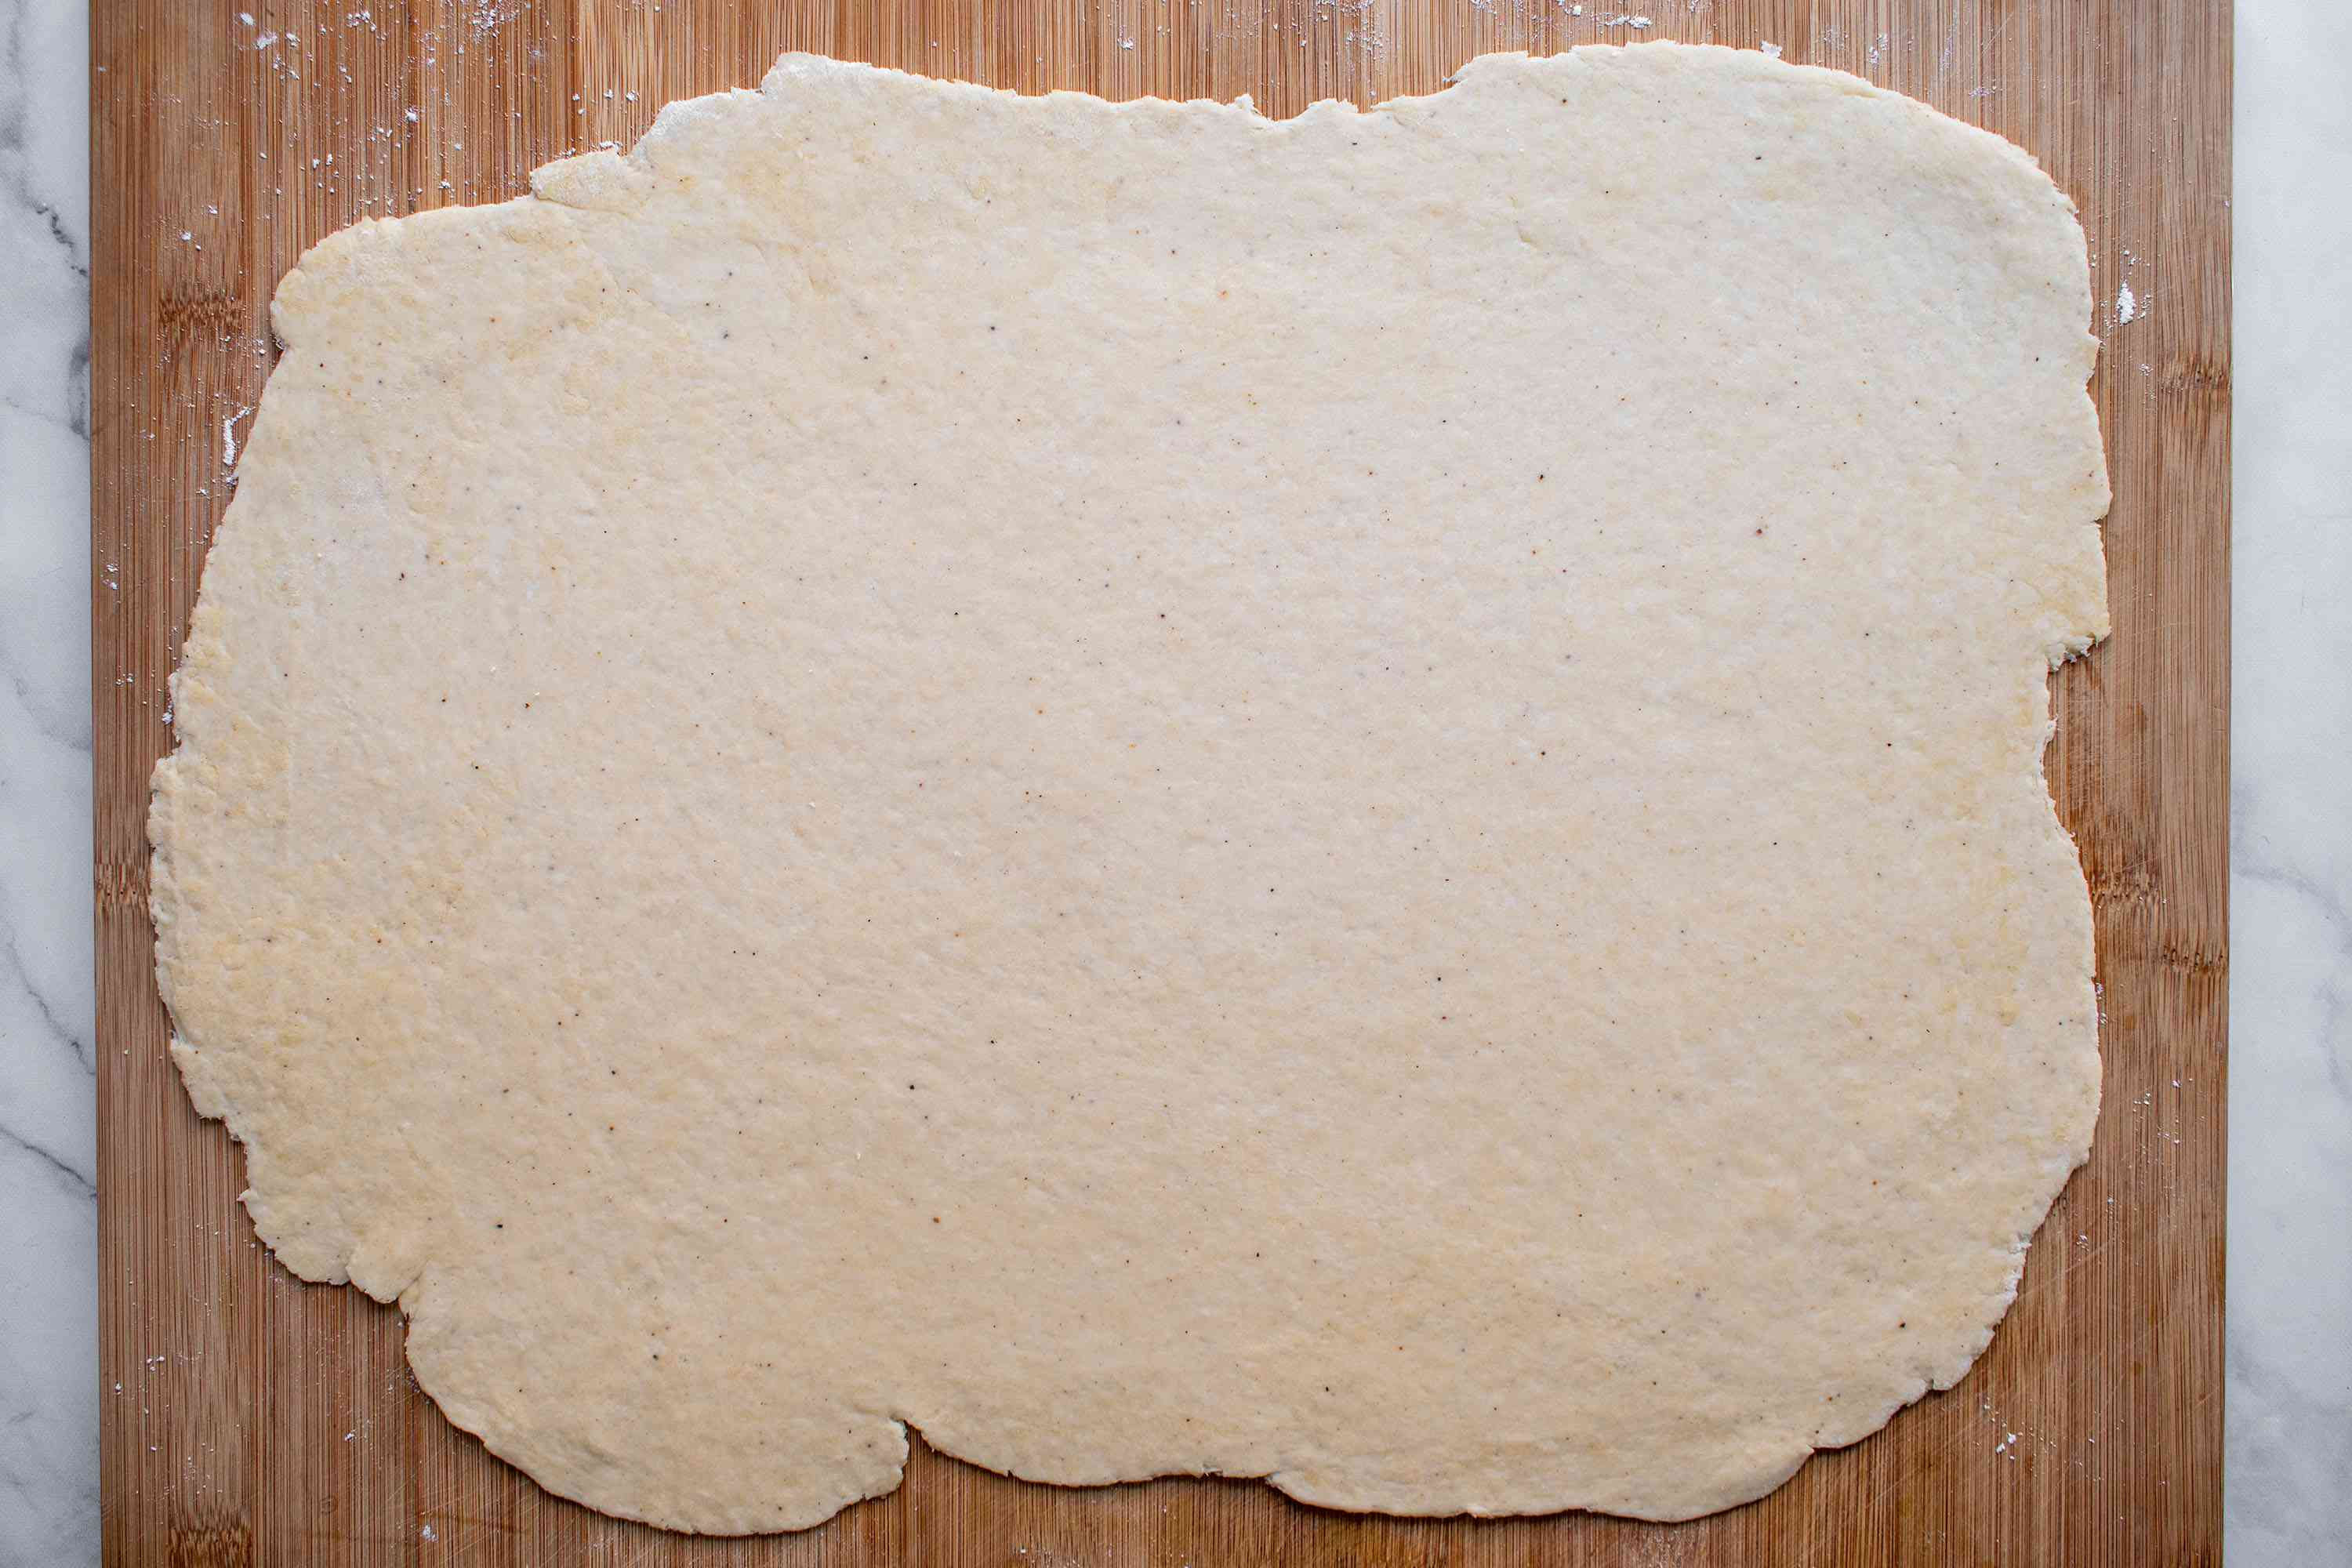 Roll out the dough on a lightly floured surface